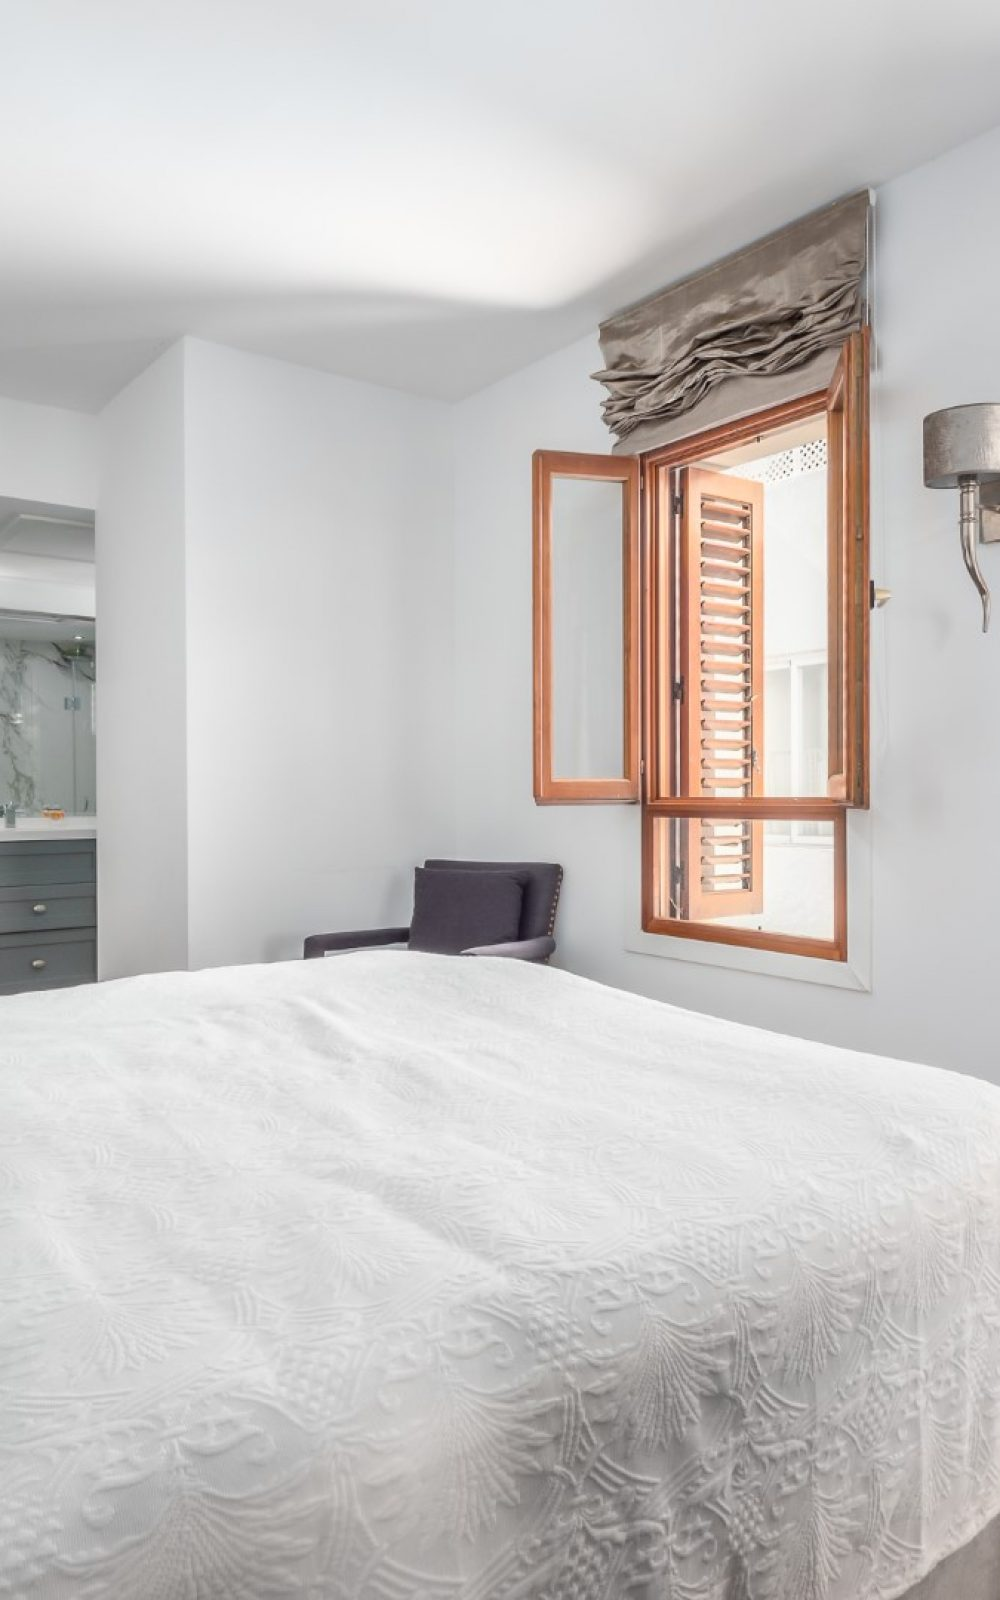 Alcores 532-NFH-04Bedroom-03 (Large)